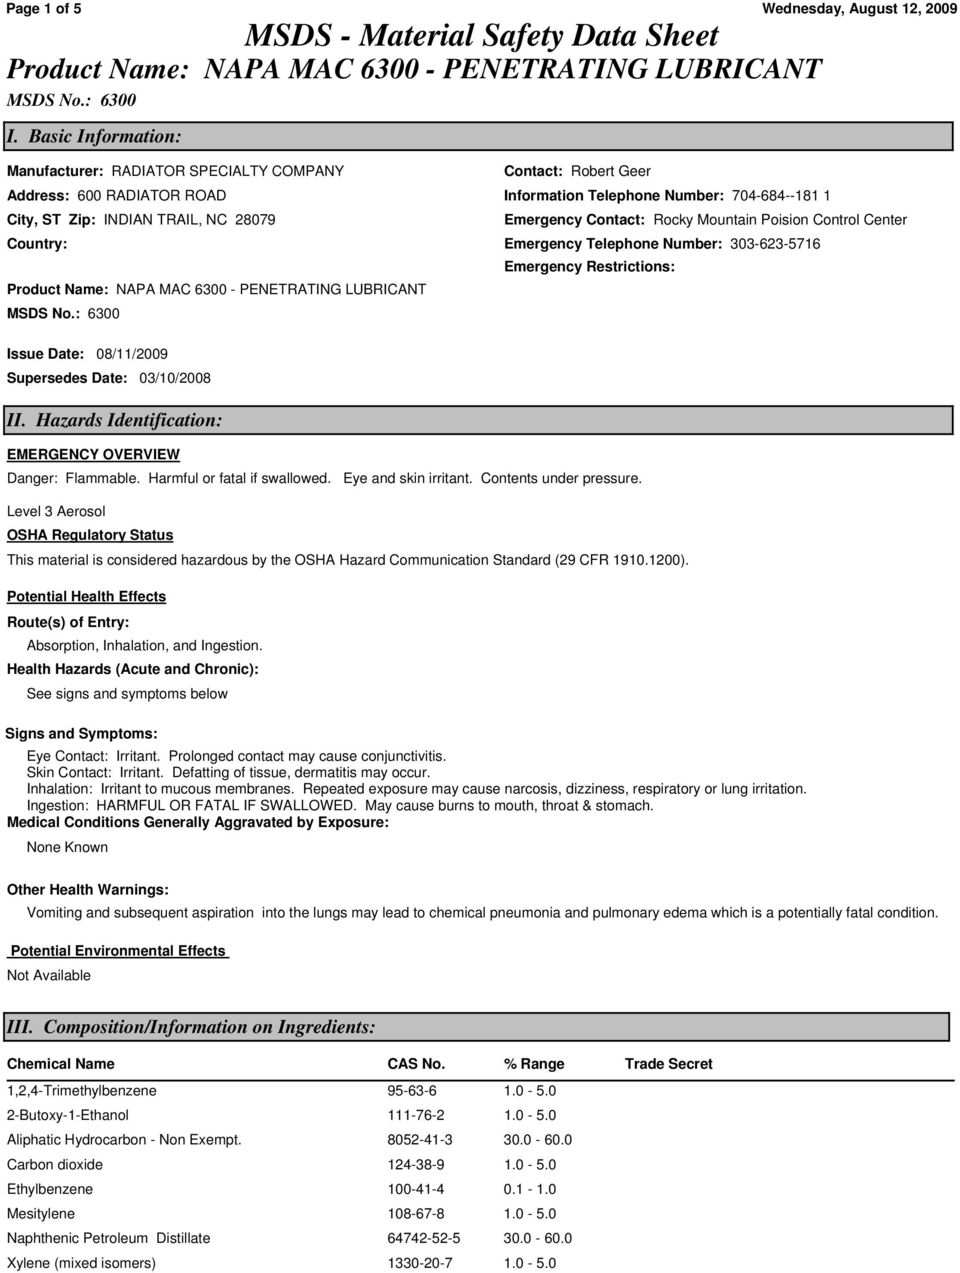 Page 1 of 5 MSDS - Material Safety Data Sheet Product Name